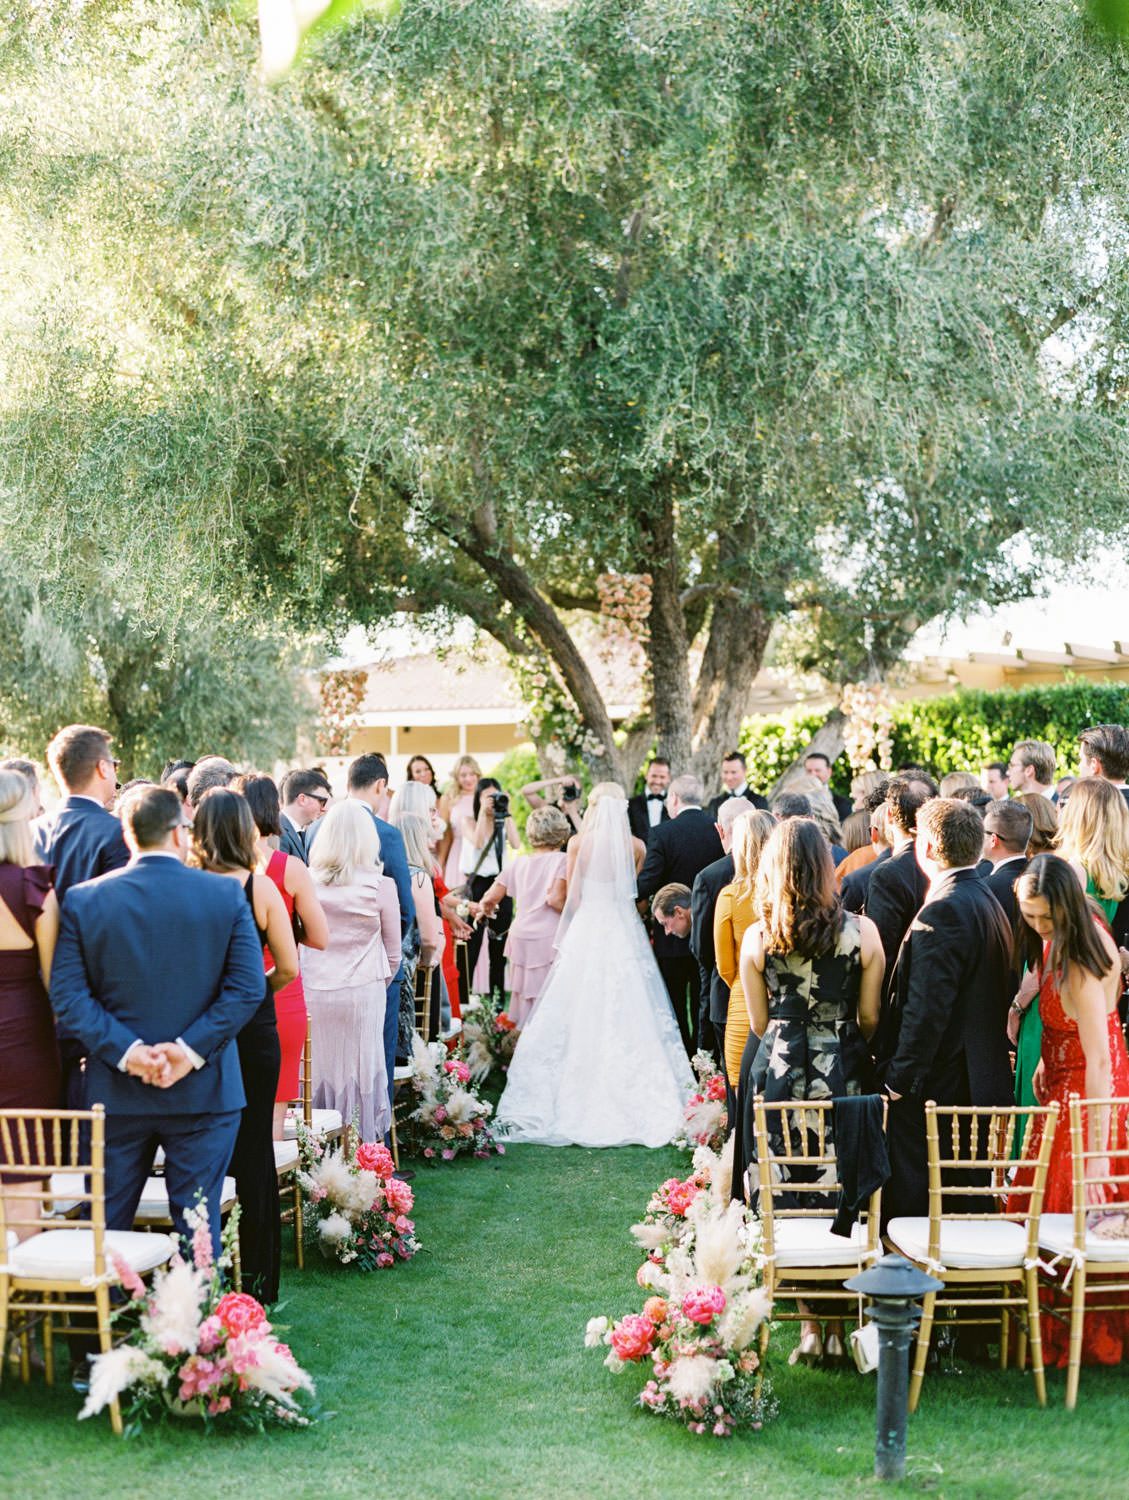 Large tree with hanging floral arrangements and pink peonies and pampas grass along the aisle. Miramonte Resort ceremony on Miramonte Green. Film photography by Cavin Elizabeth.